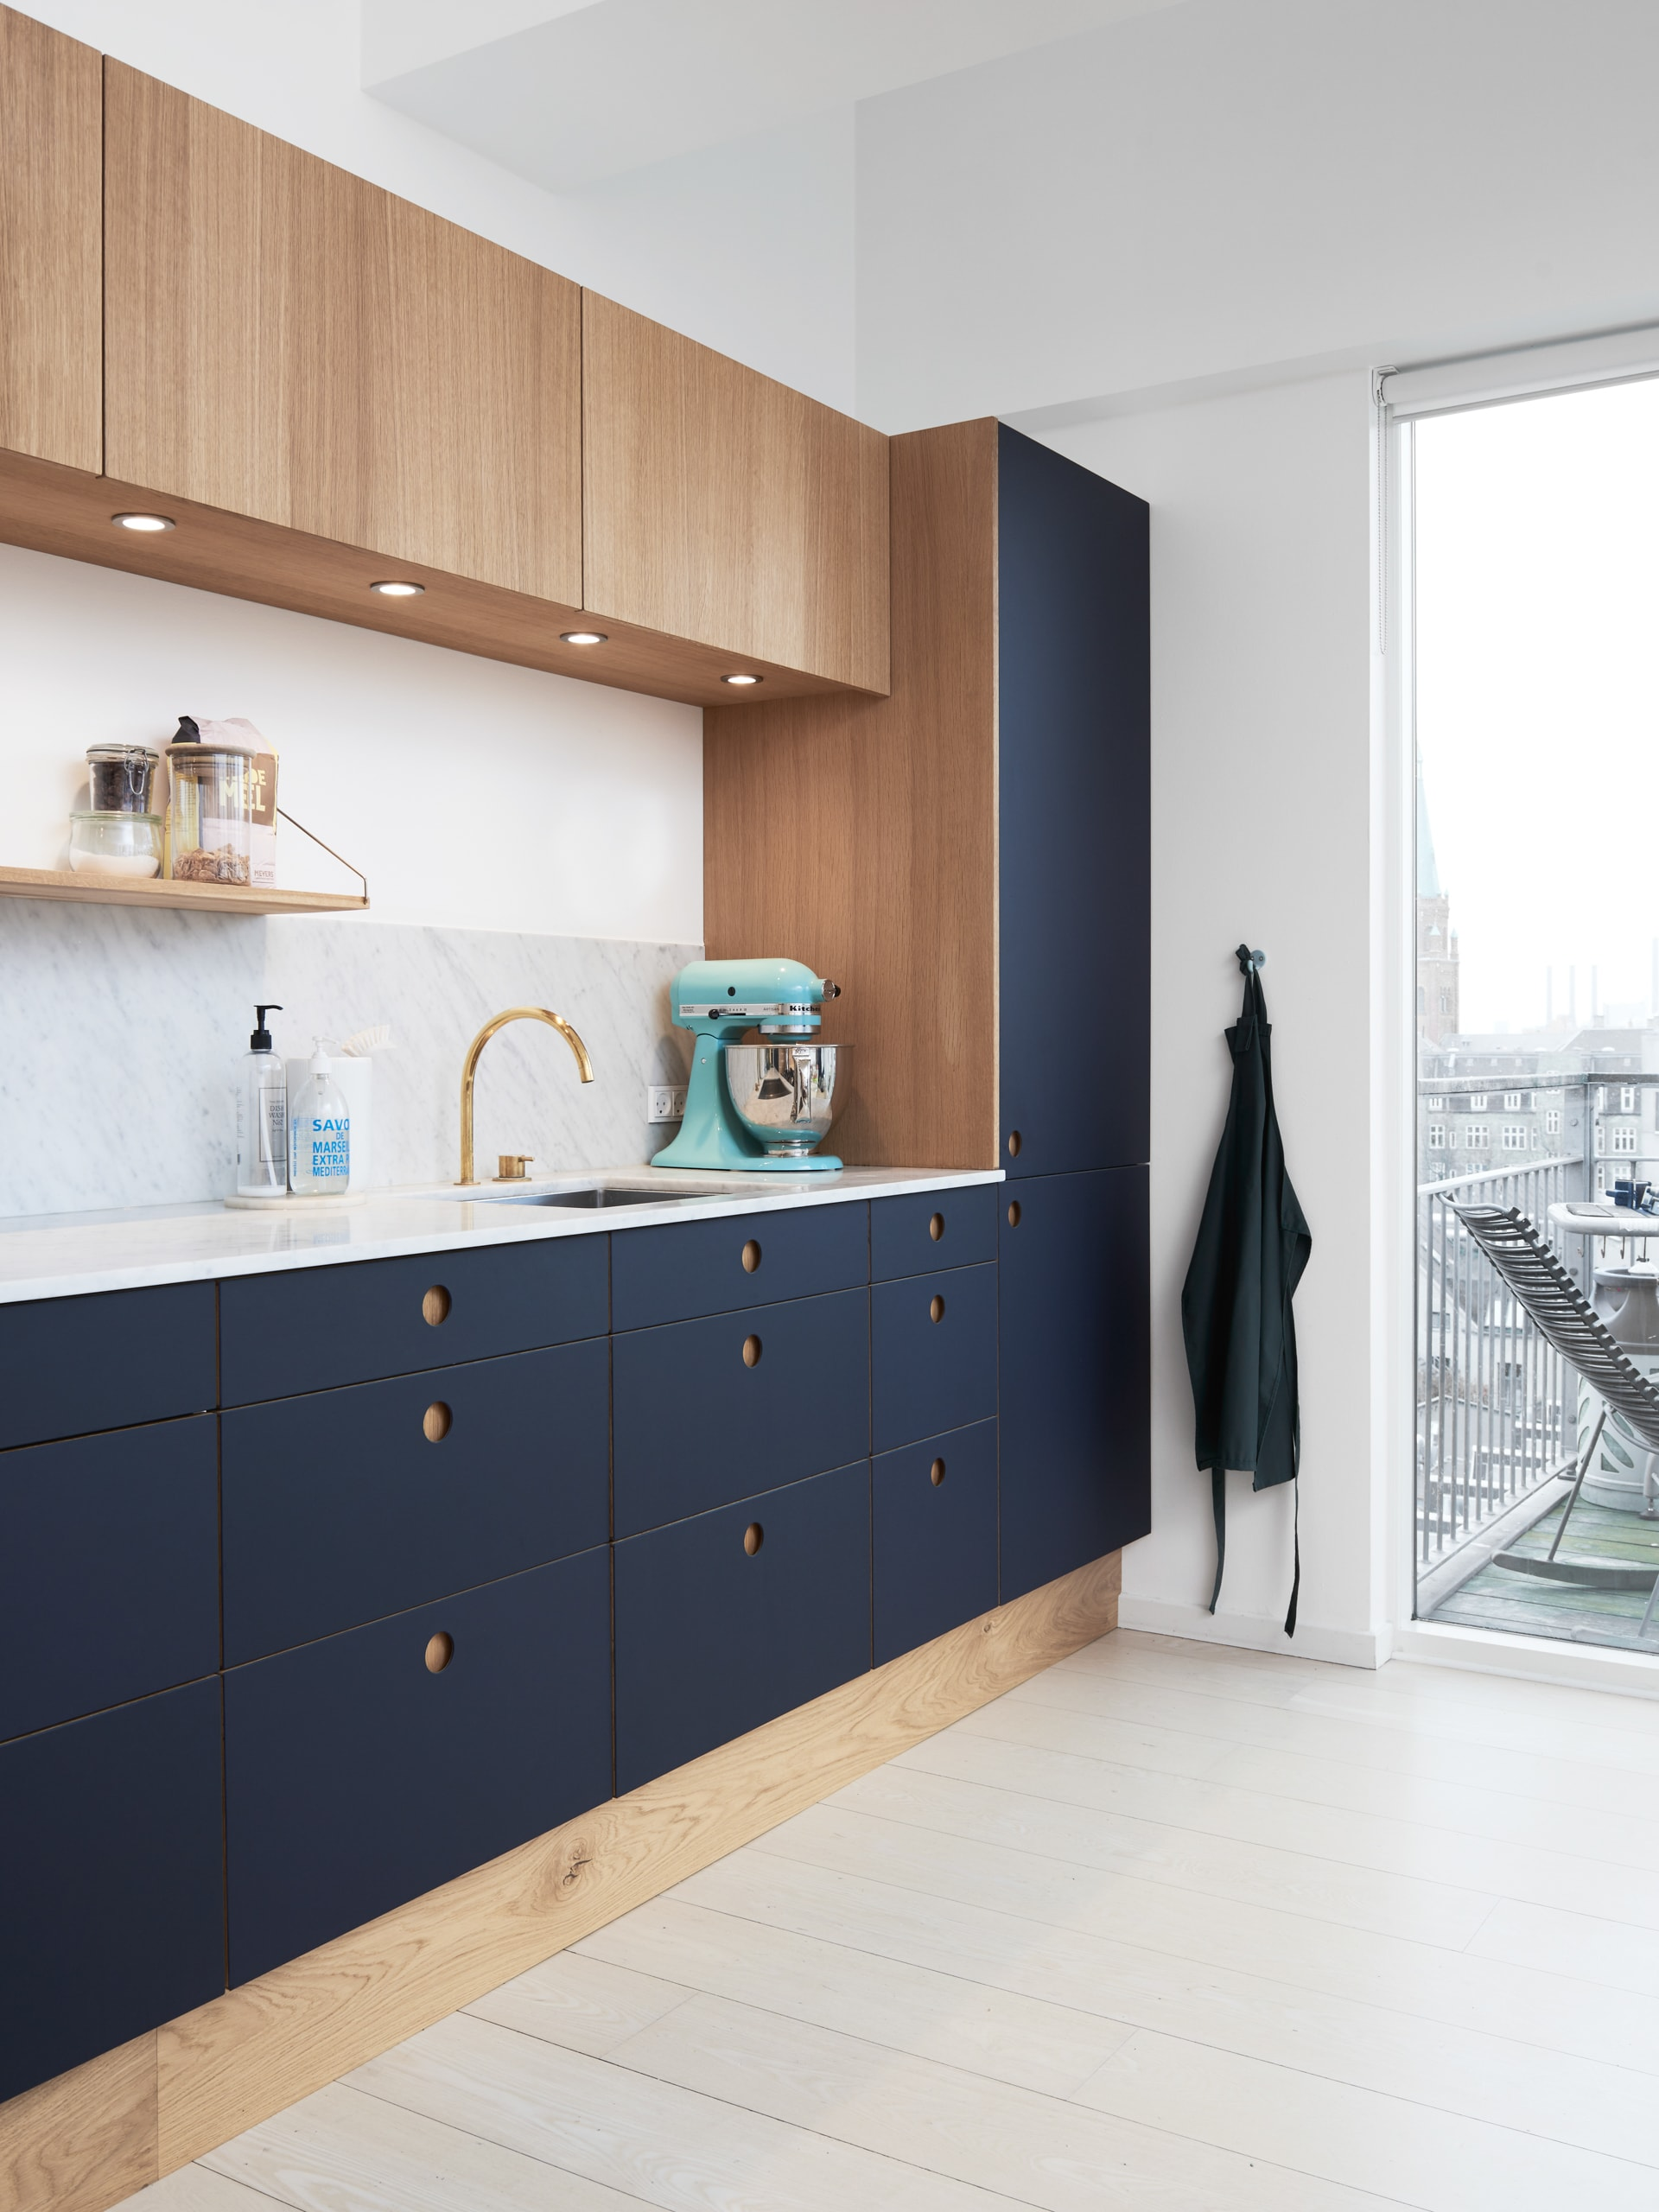 Reform renews and makes extraordinary IKEA kitchens ...